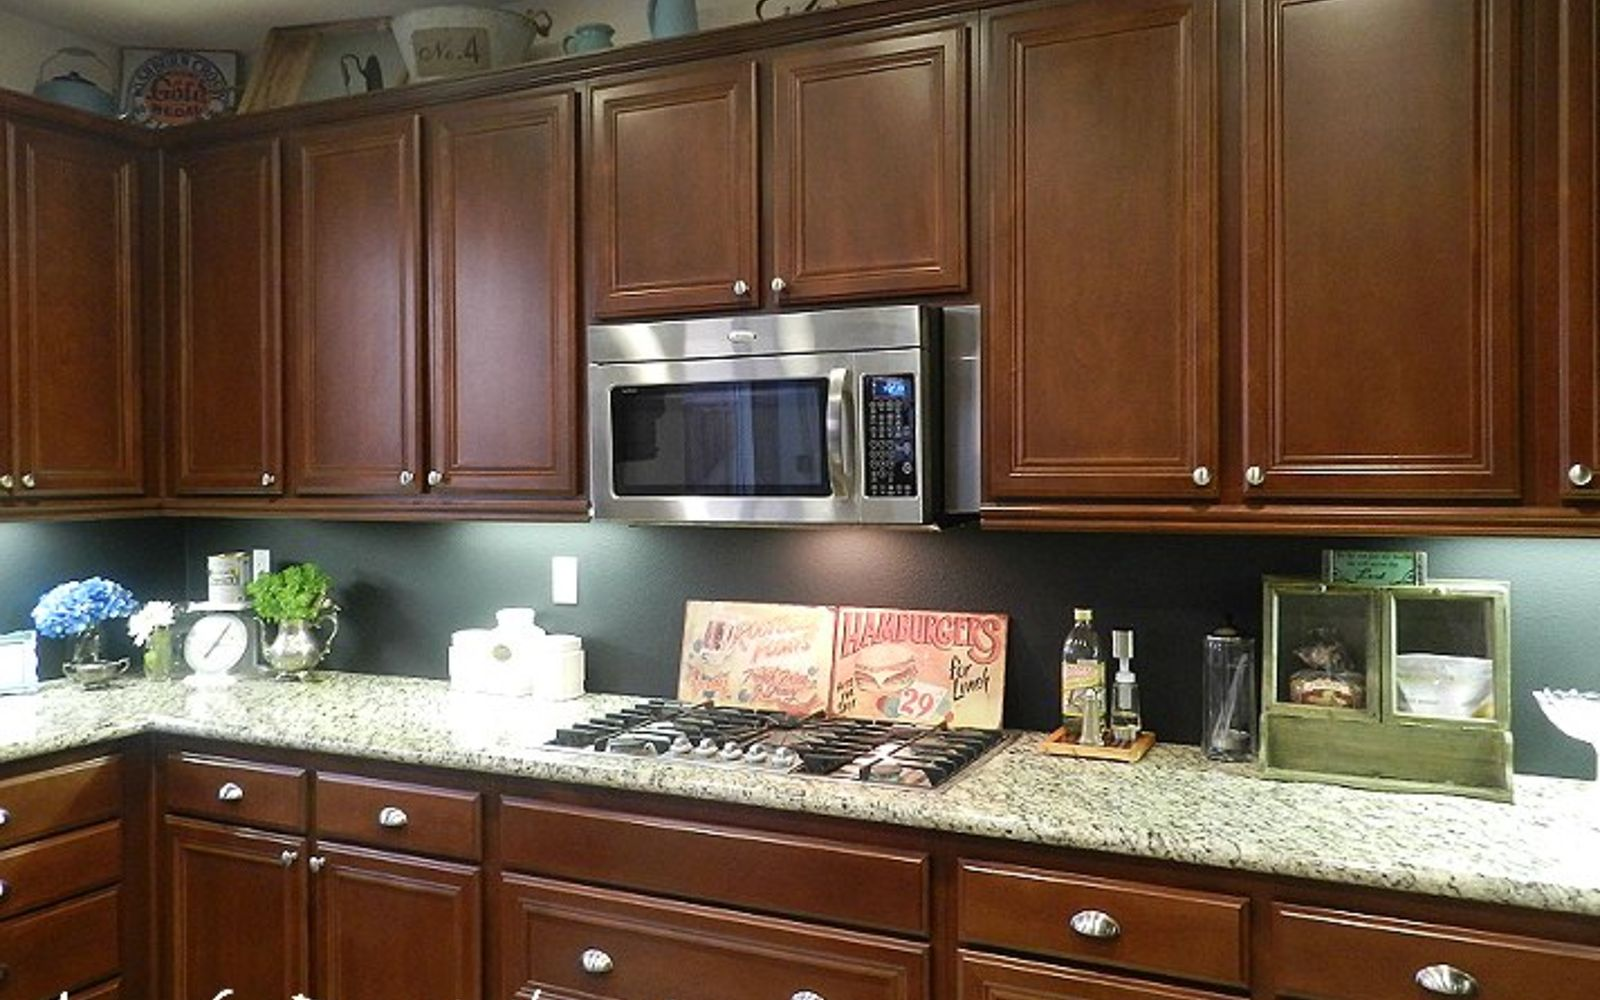 painted kitchen backsplash designs 13 kitchen backsplash ideas that aren t tile 3976